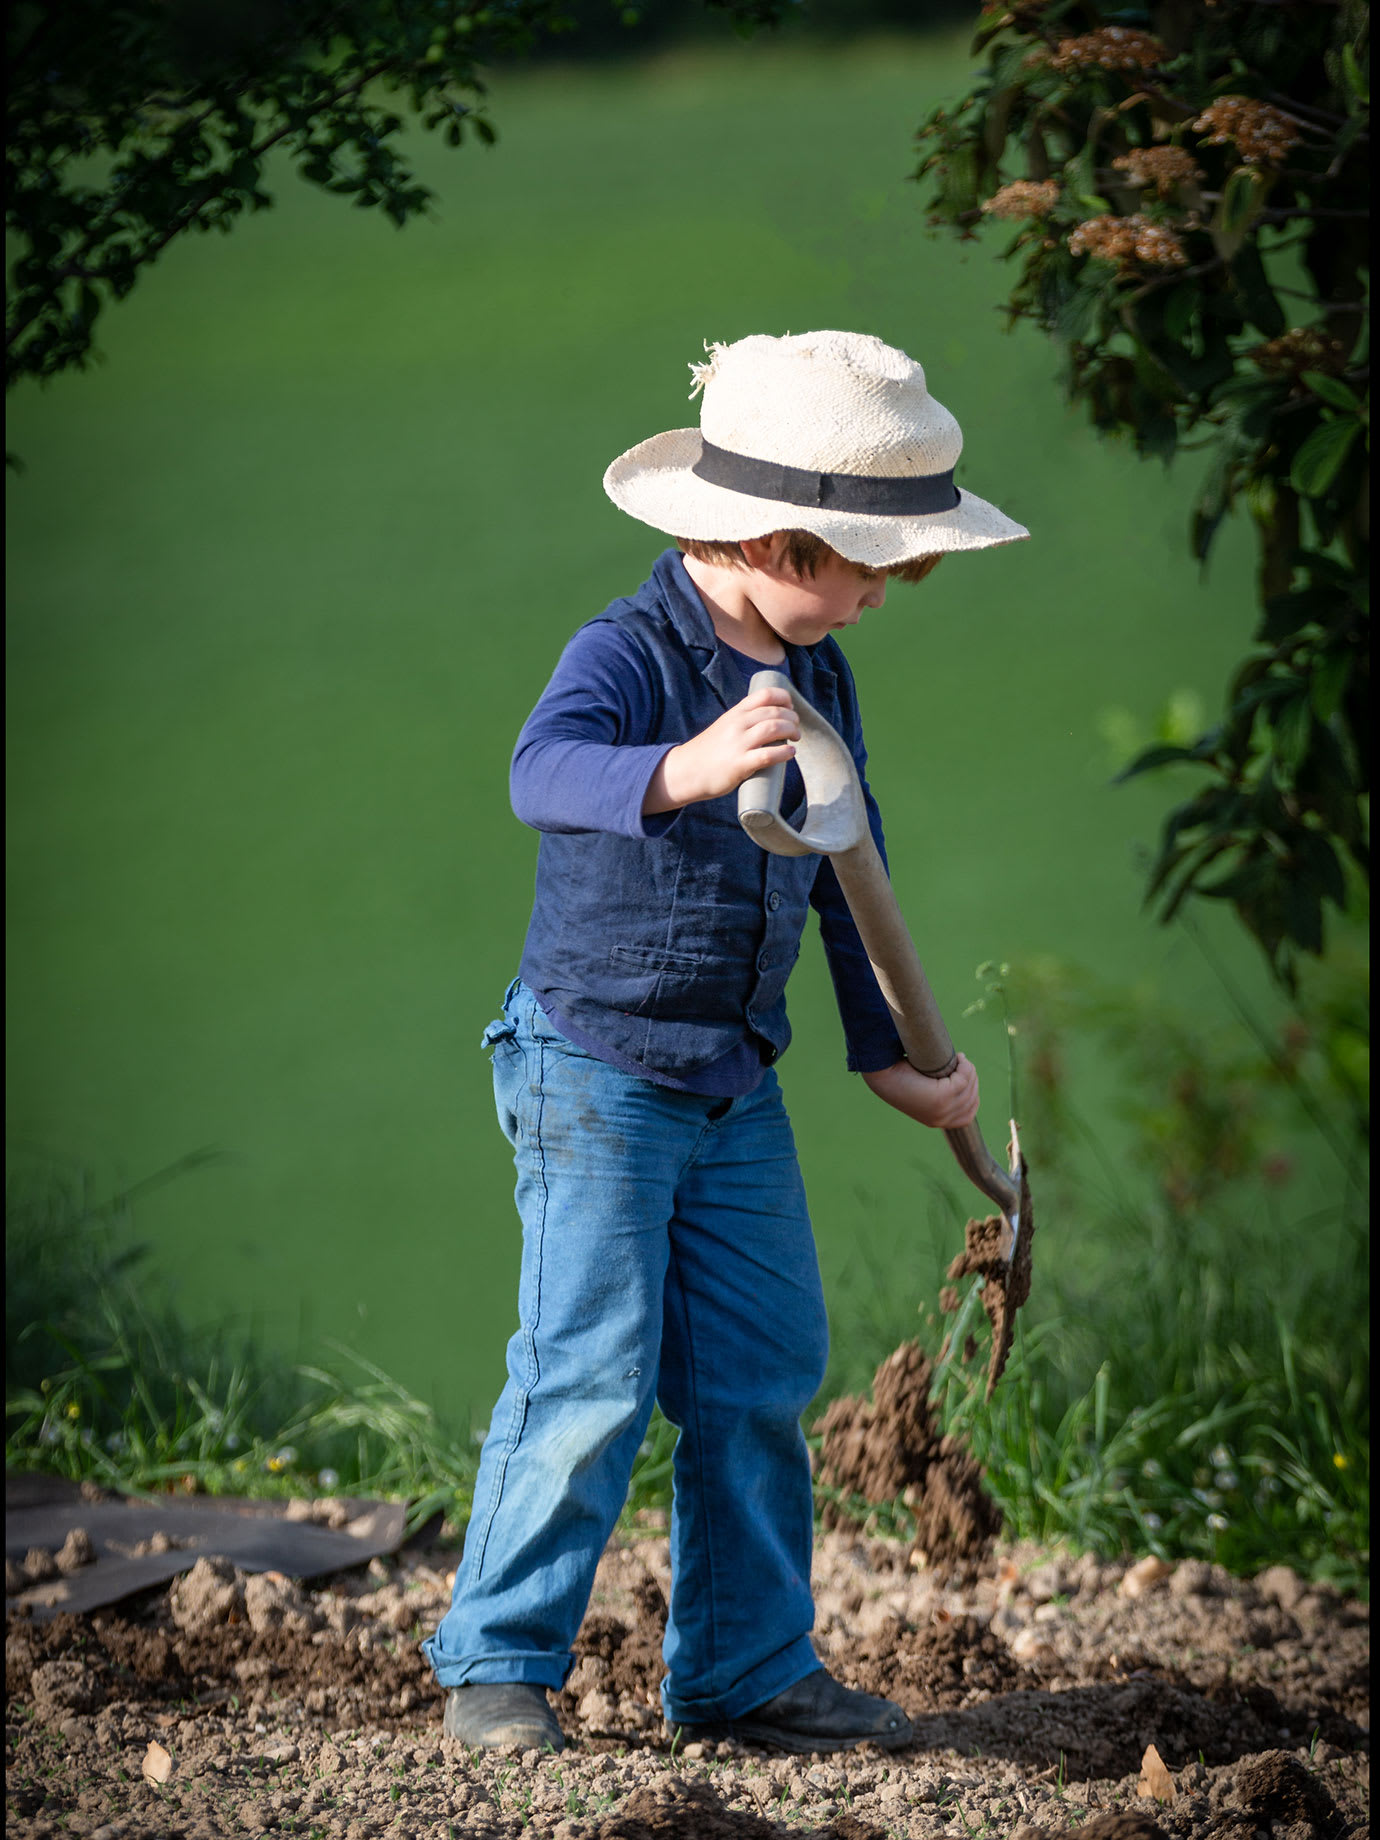 A young boy raking a garden.